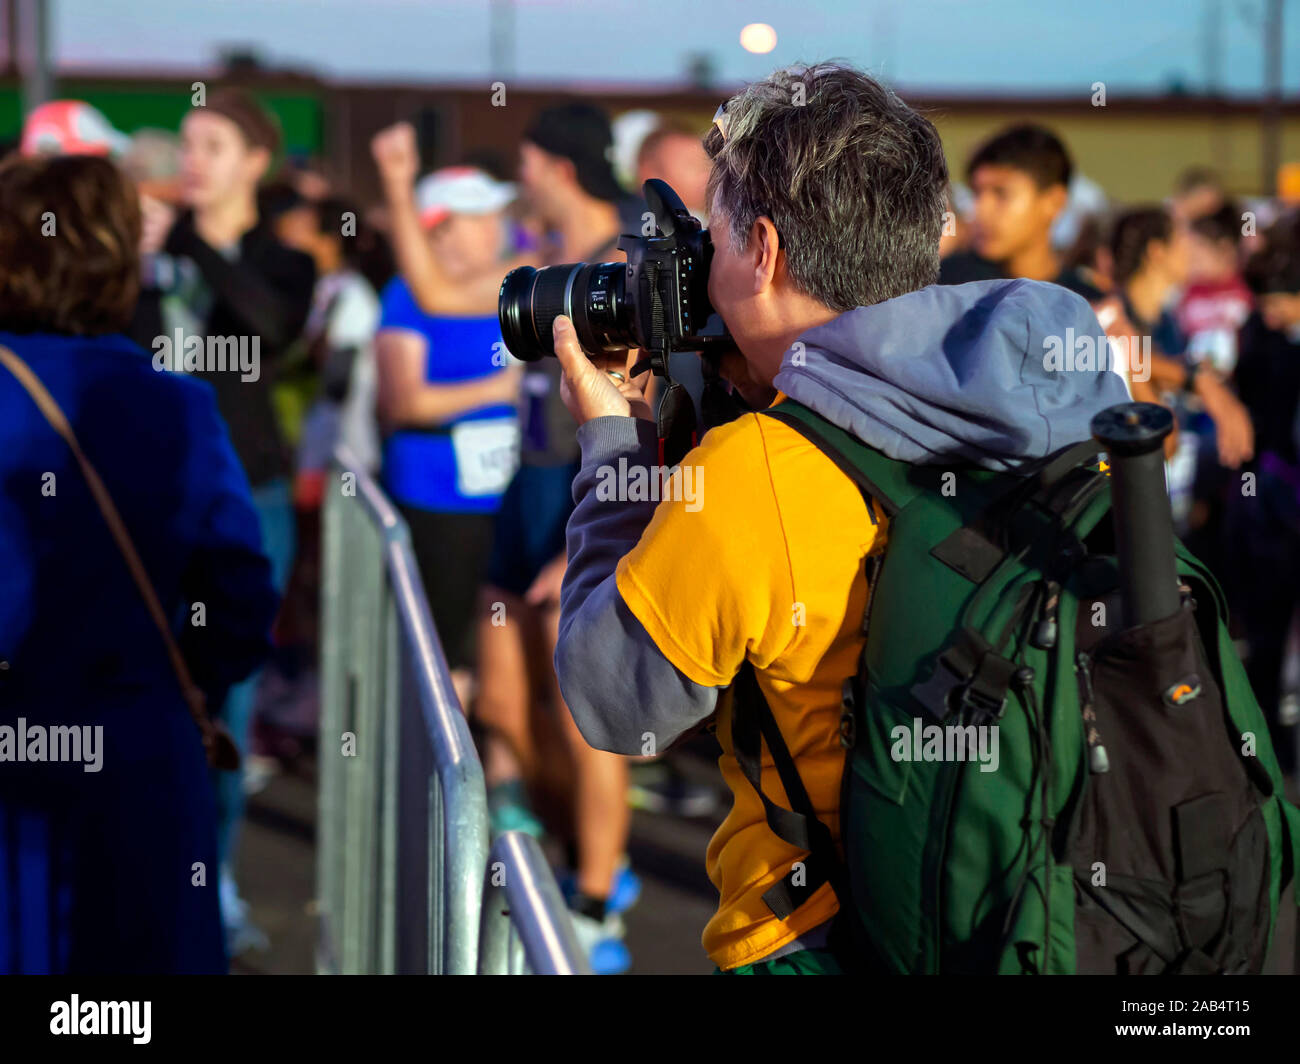 female-photographer-focuses-her-camera-on-the-crowd-of-competitors-awaiting-the-start-of-the-corpus-christi-15th-annual-harbor-half-marathon-2AB4T15.jpg